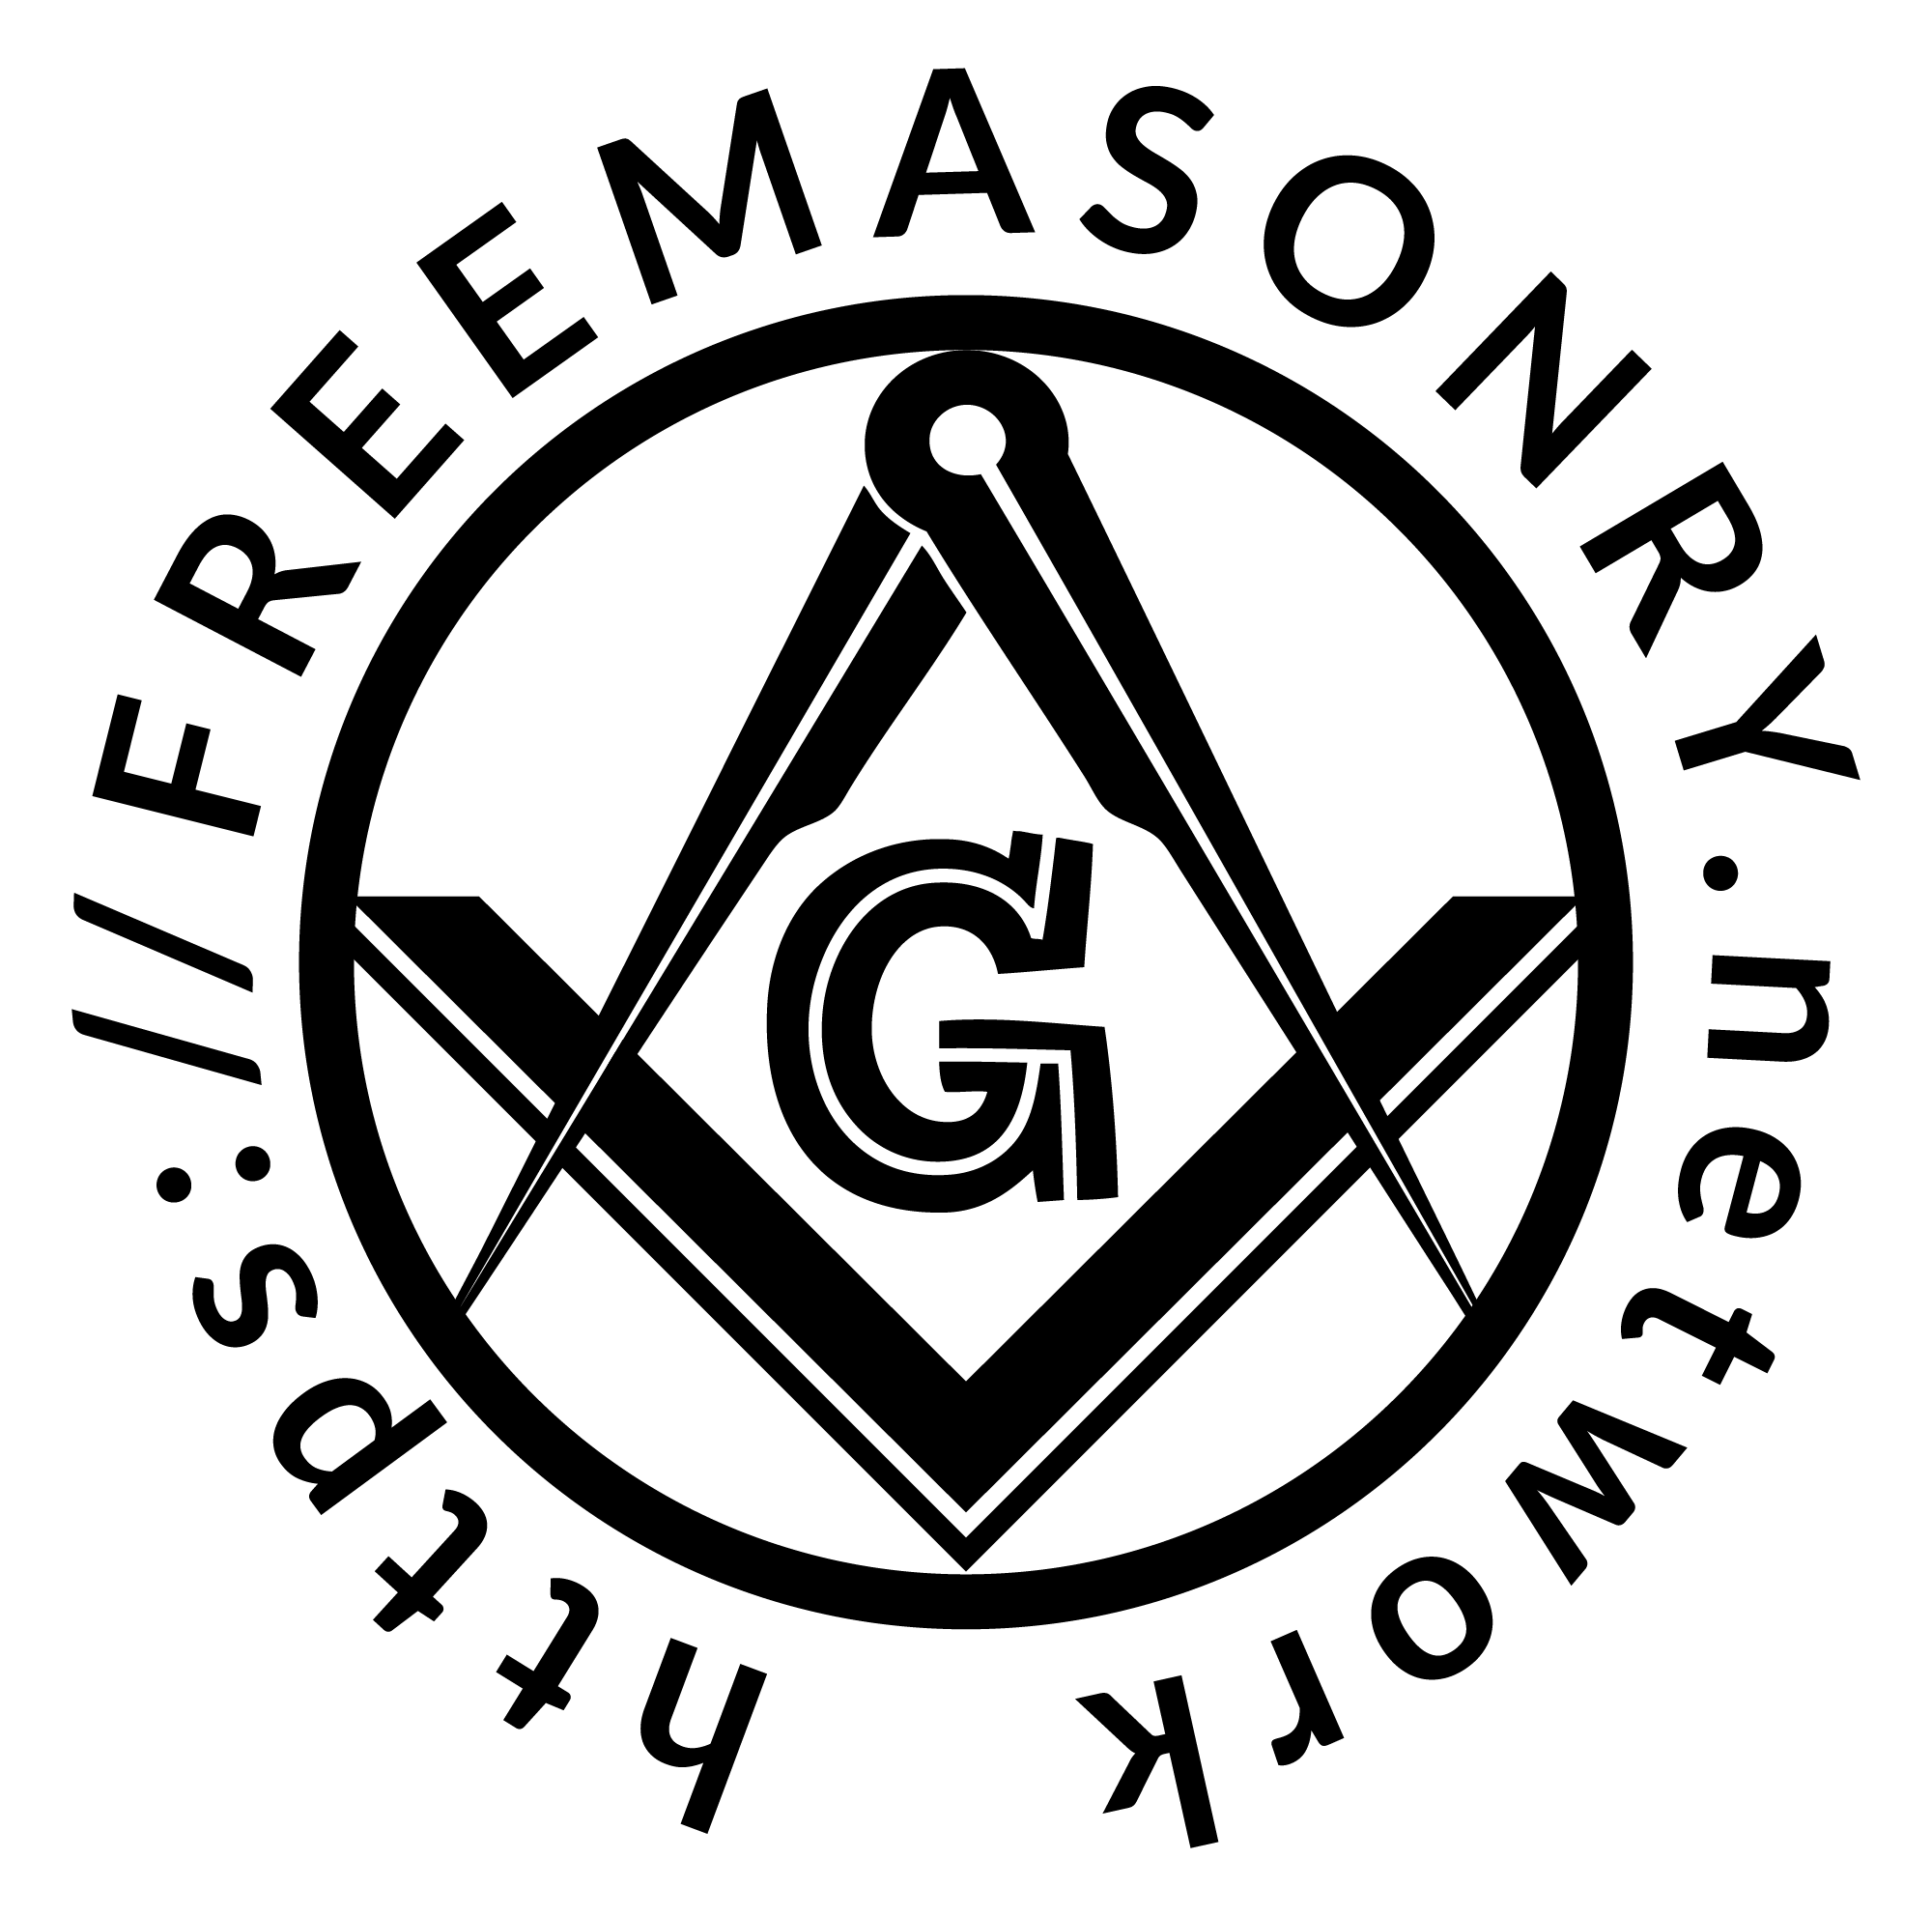 FREEMASONRY IN DOMINICAN REPUBLIC